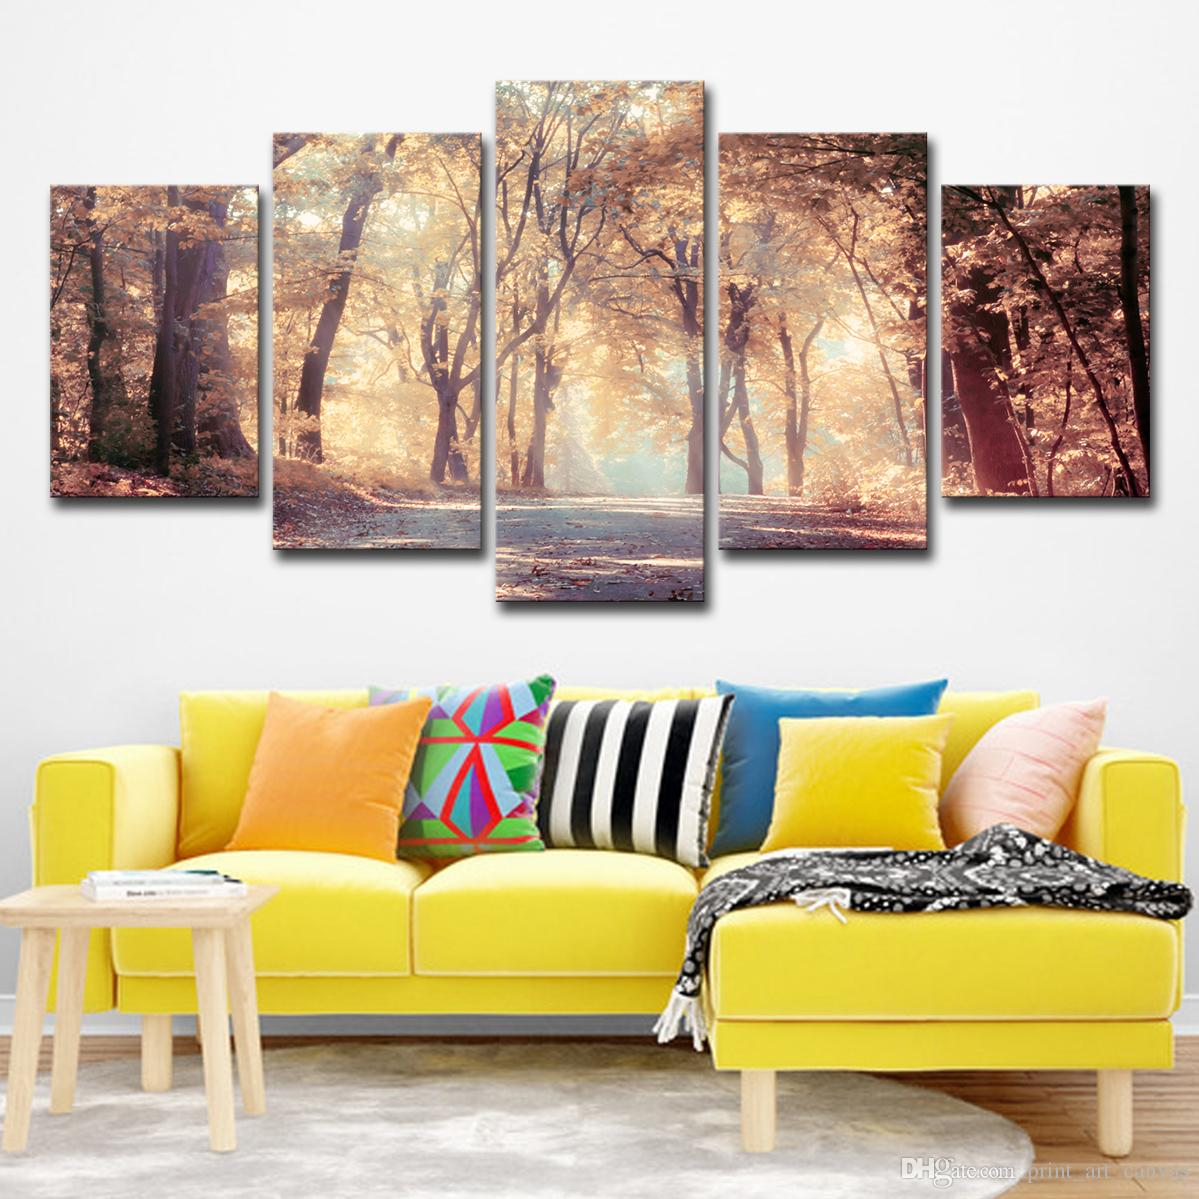 Canvas Modern Wall Art Poster Home Decor HD Printed Painting 5 Panels Autumn Leaves Tree Landscape Modular Pictures